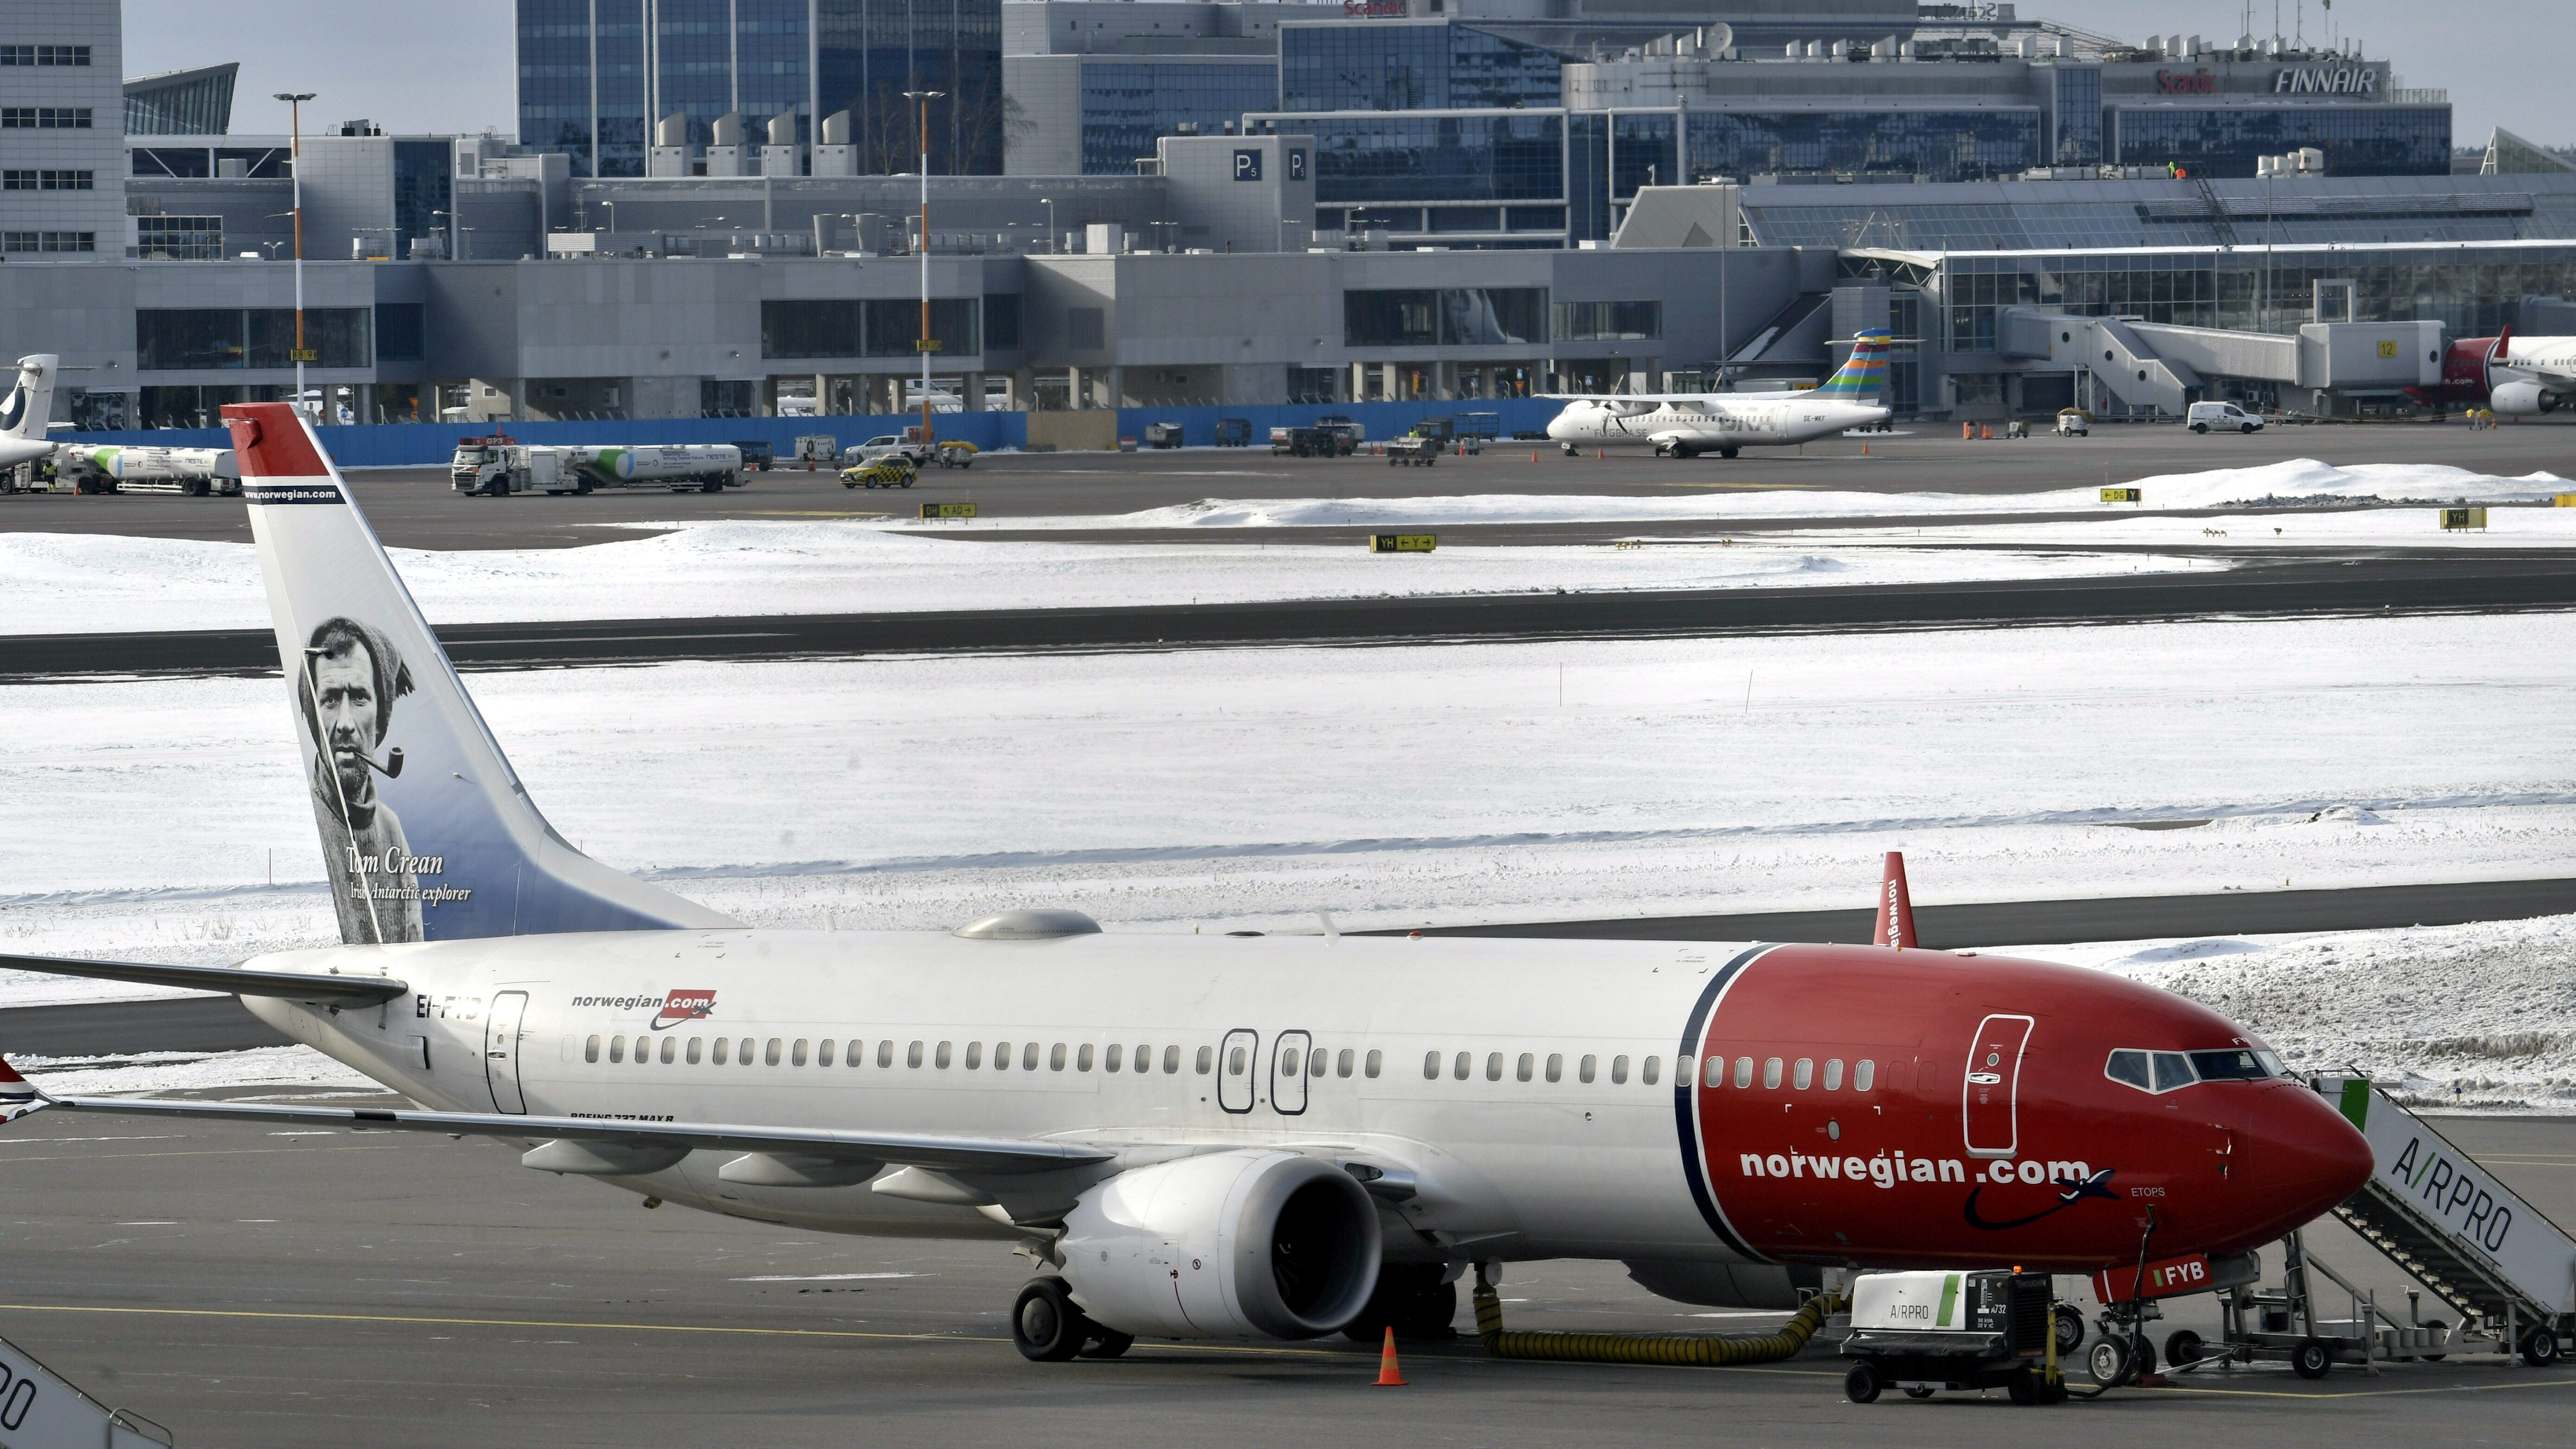 Image for For Boeing, Costs Of Grounding Jets Have Only Just Begun Article